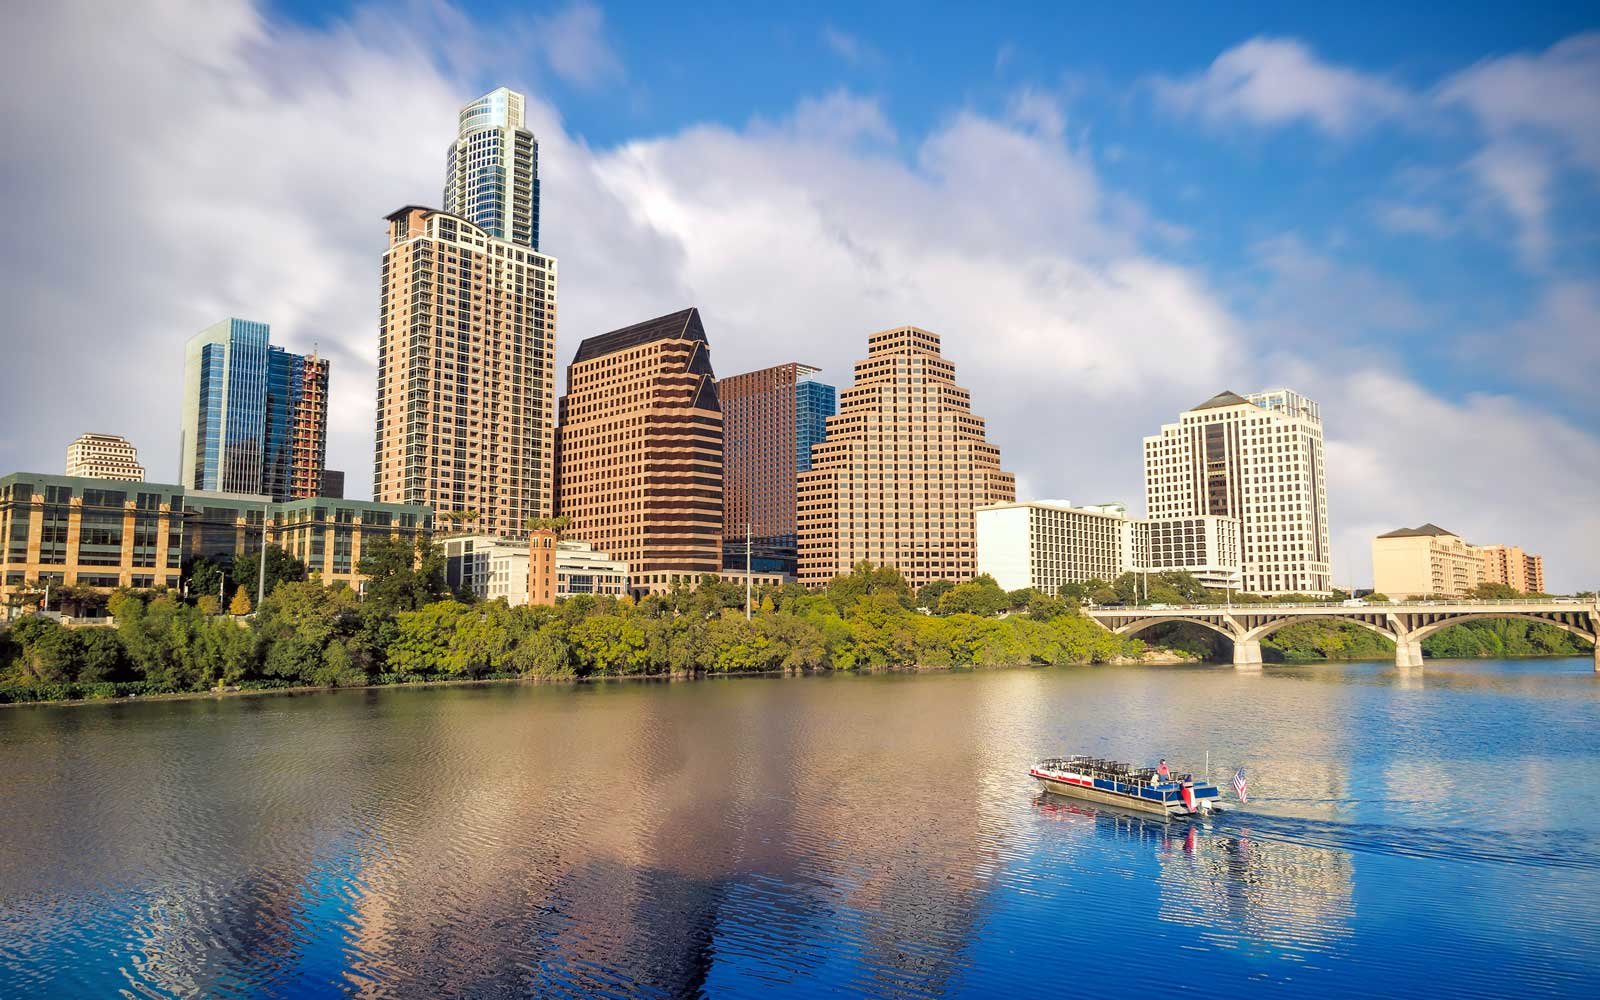 Kayaks on the water in Austin, Texas